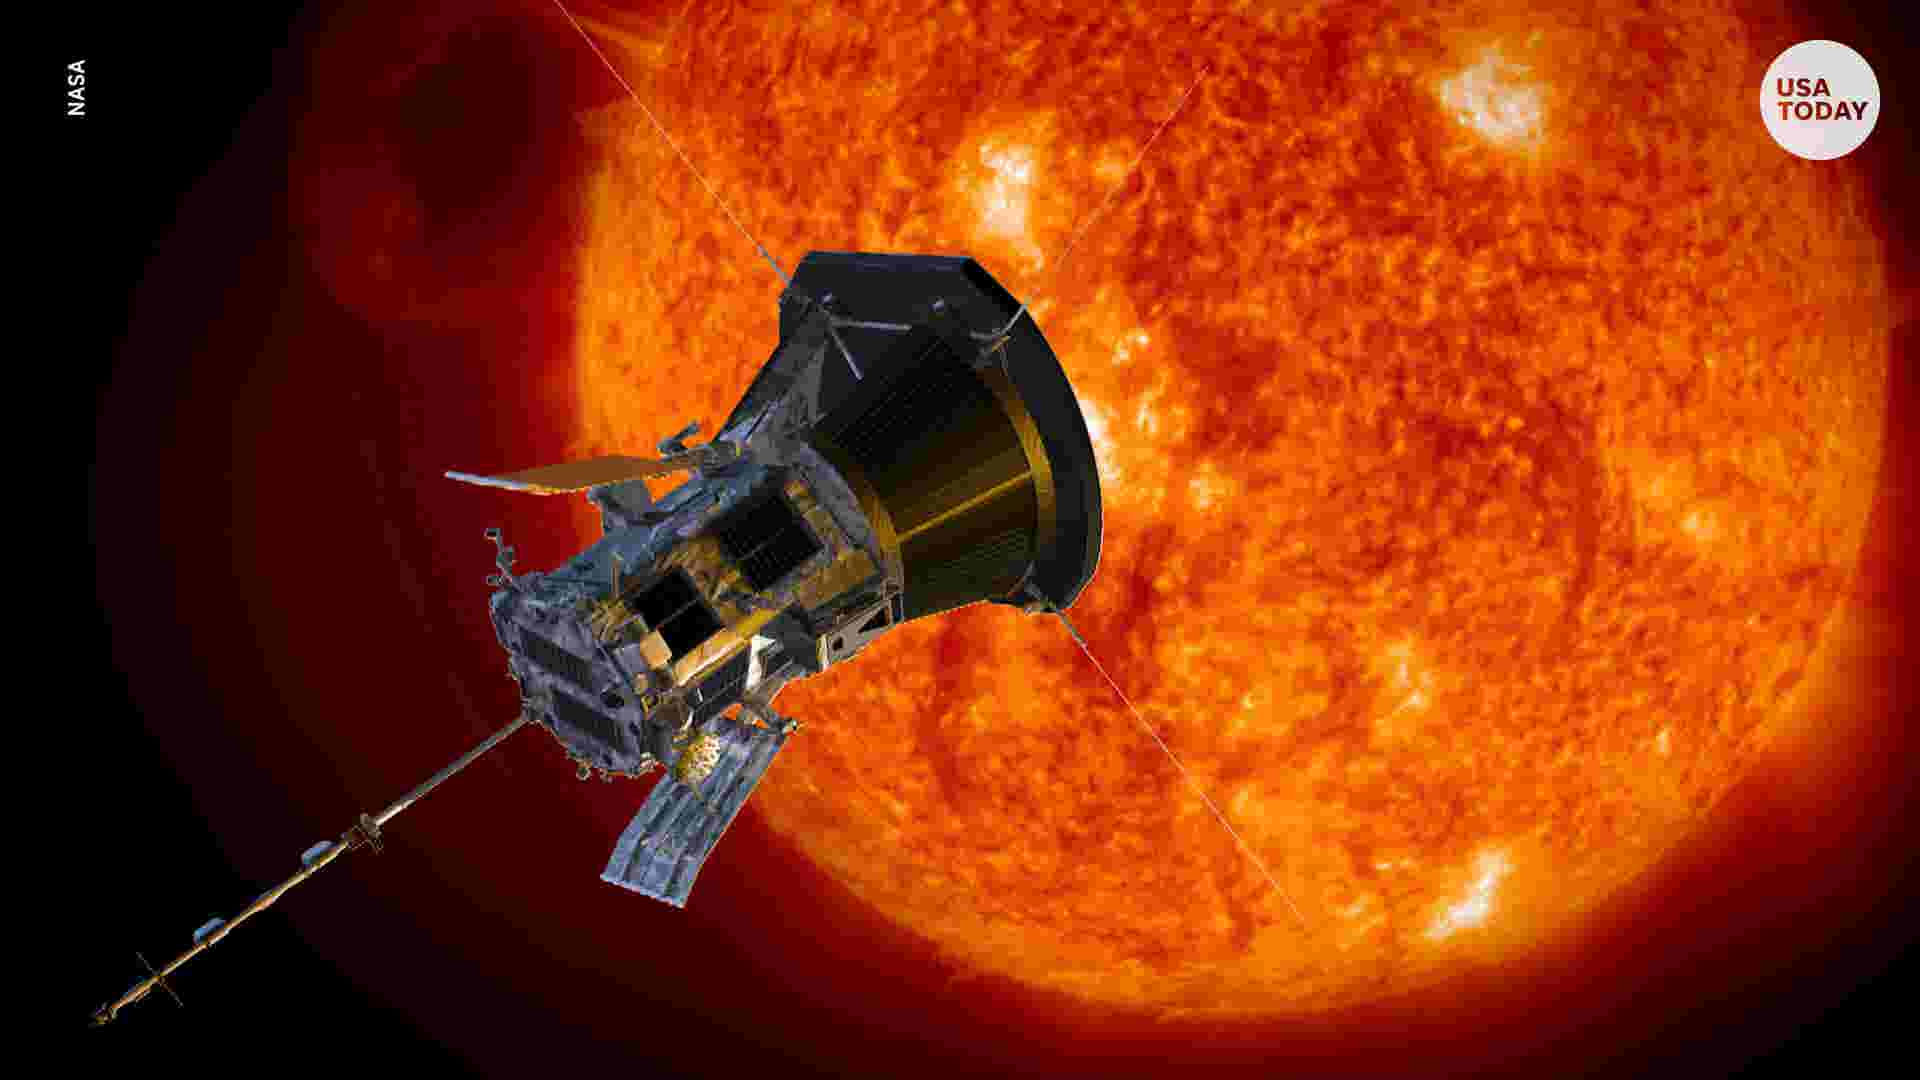 NASA's new mission: 'Touch' the sun